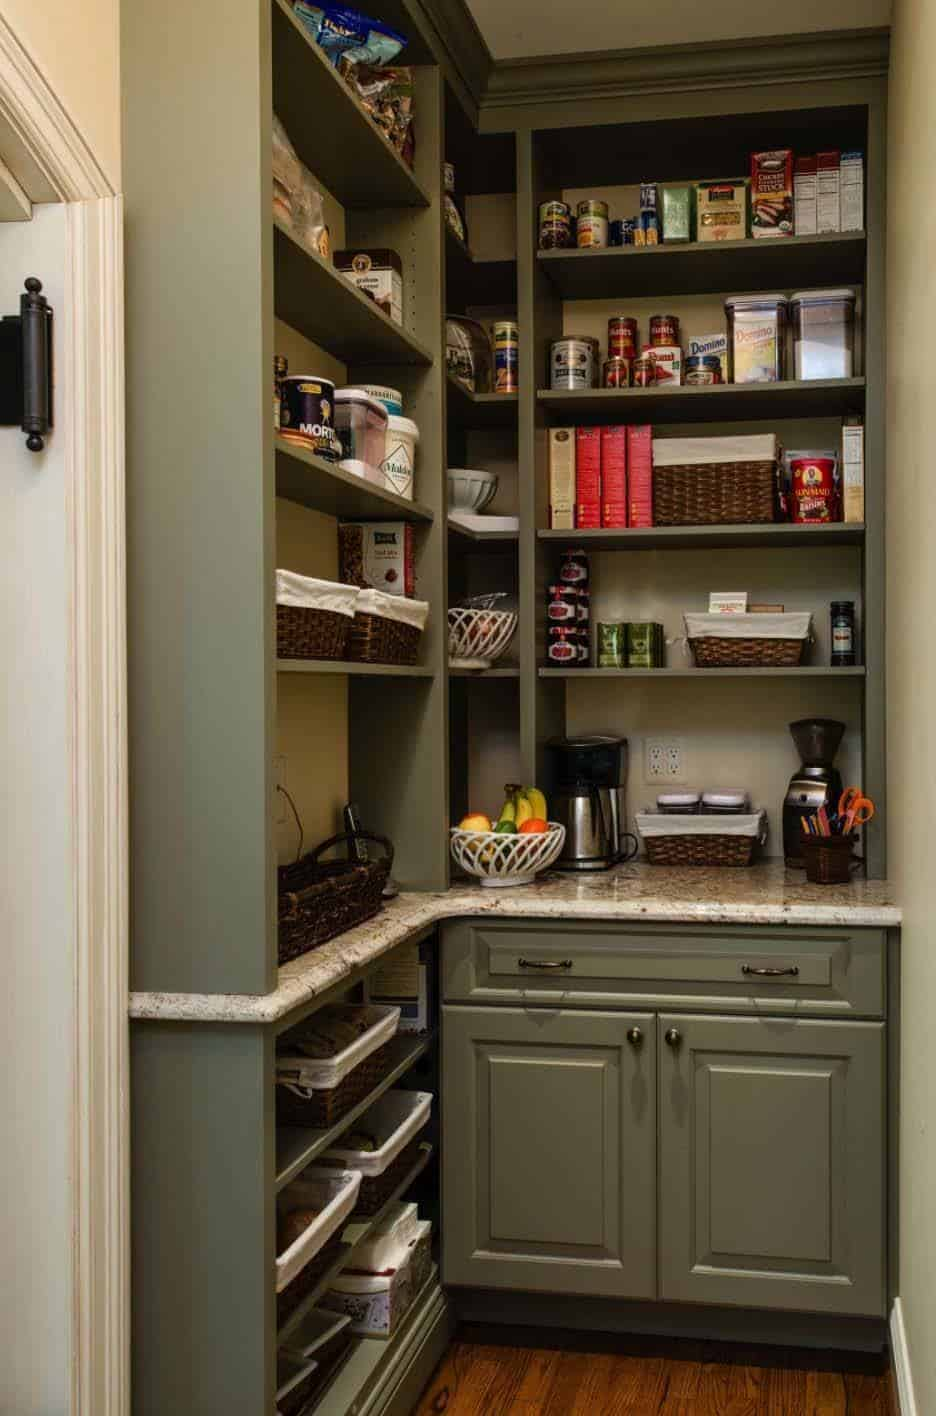 35 clever ideas to help organize your kitchen pantry. Black Bedroom Furniture Sets. Home Design Ideas